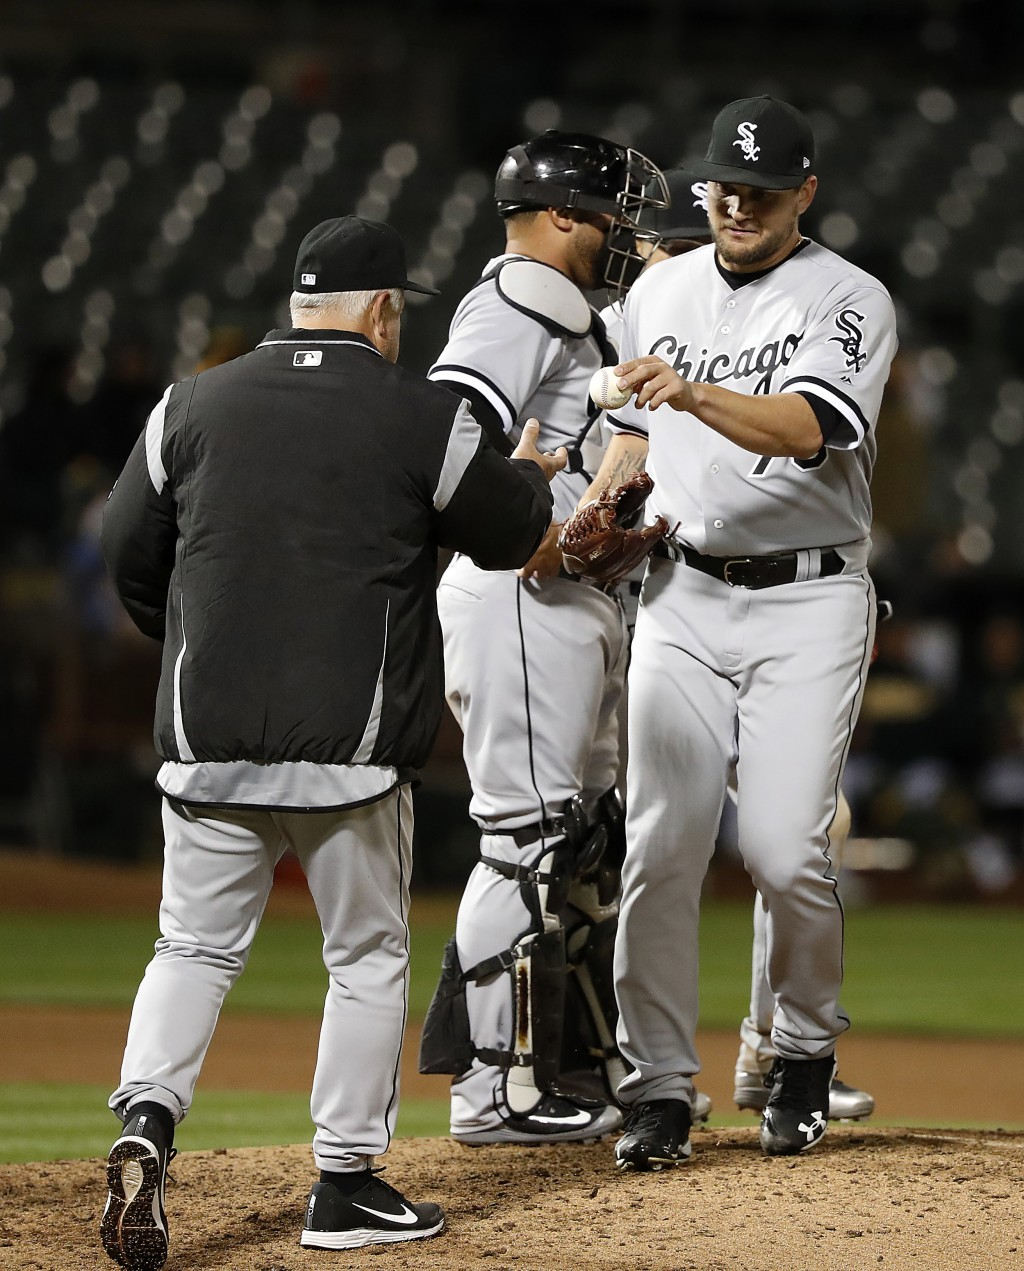 Chicago White Sox relief pitcher Luis Avilan (70) is taken out by manager Rick Renteria, left, during the seventh inning against the Oakland Athletics